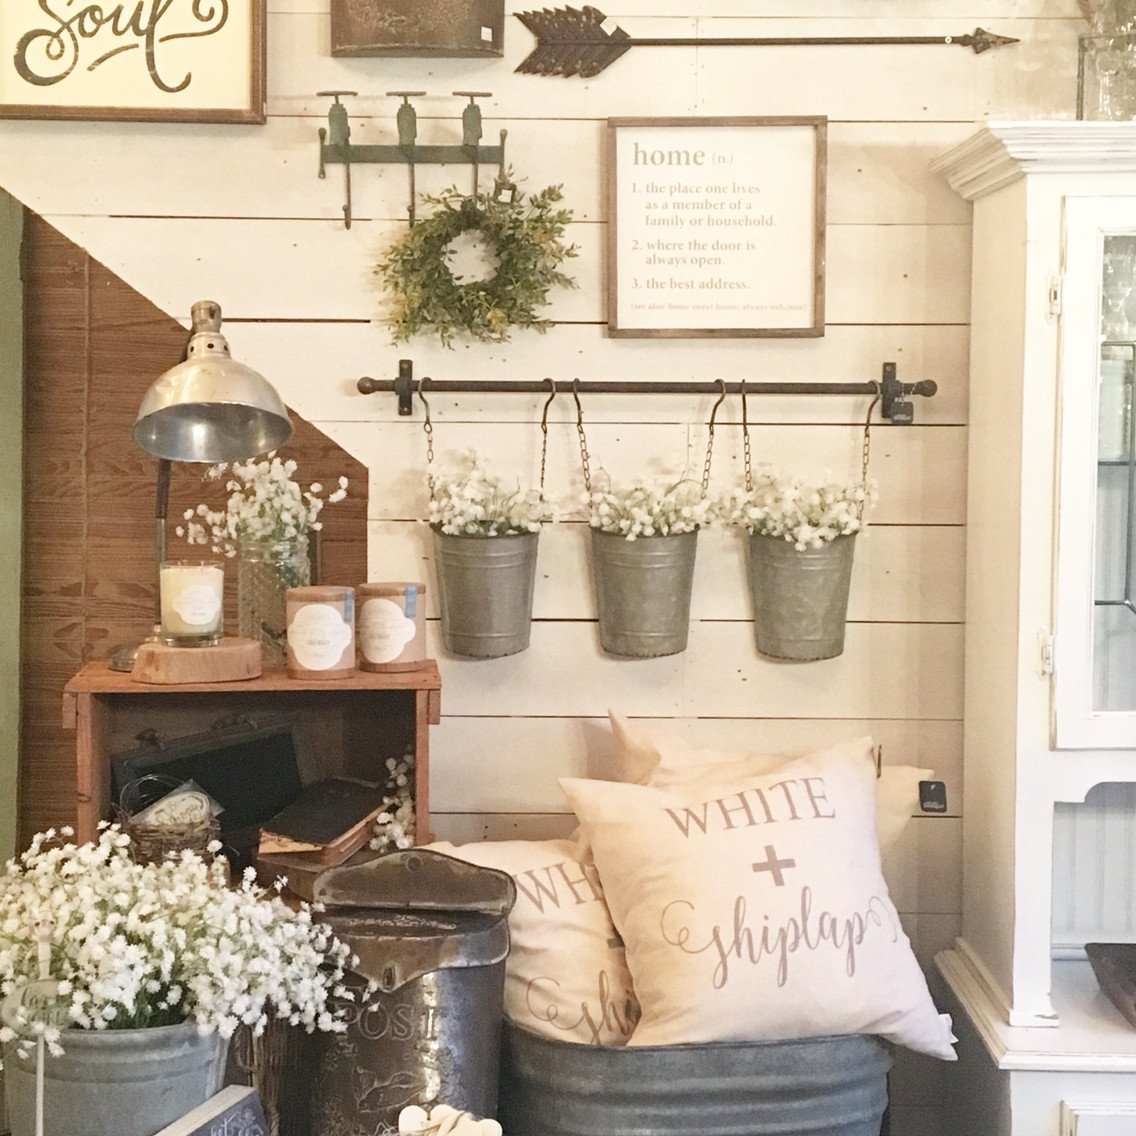 Country Kitchen Wall Decor Ideas Lovely 27 Best Rustic Wall Decor Ideas and Designs for 2019